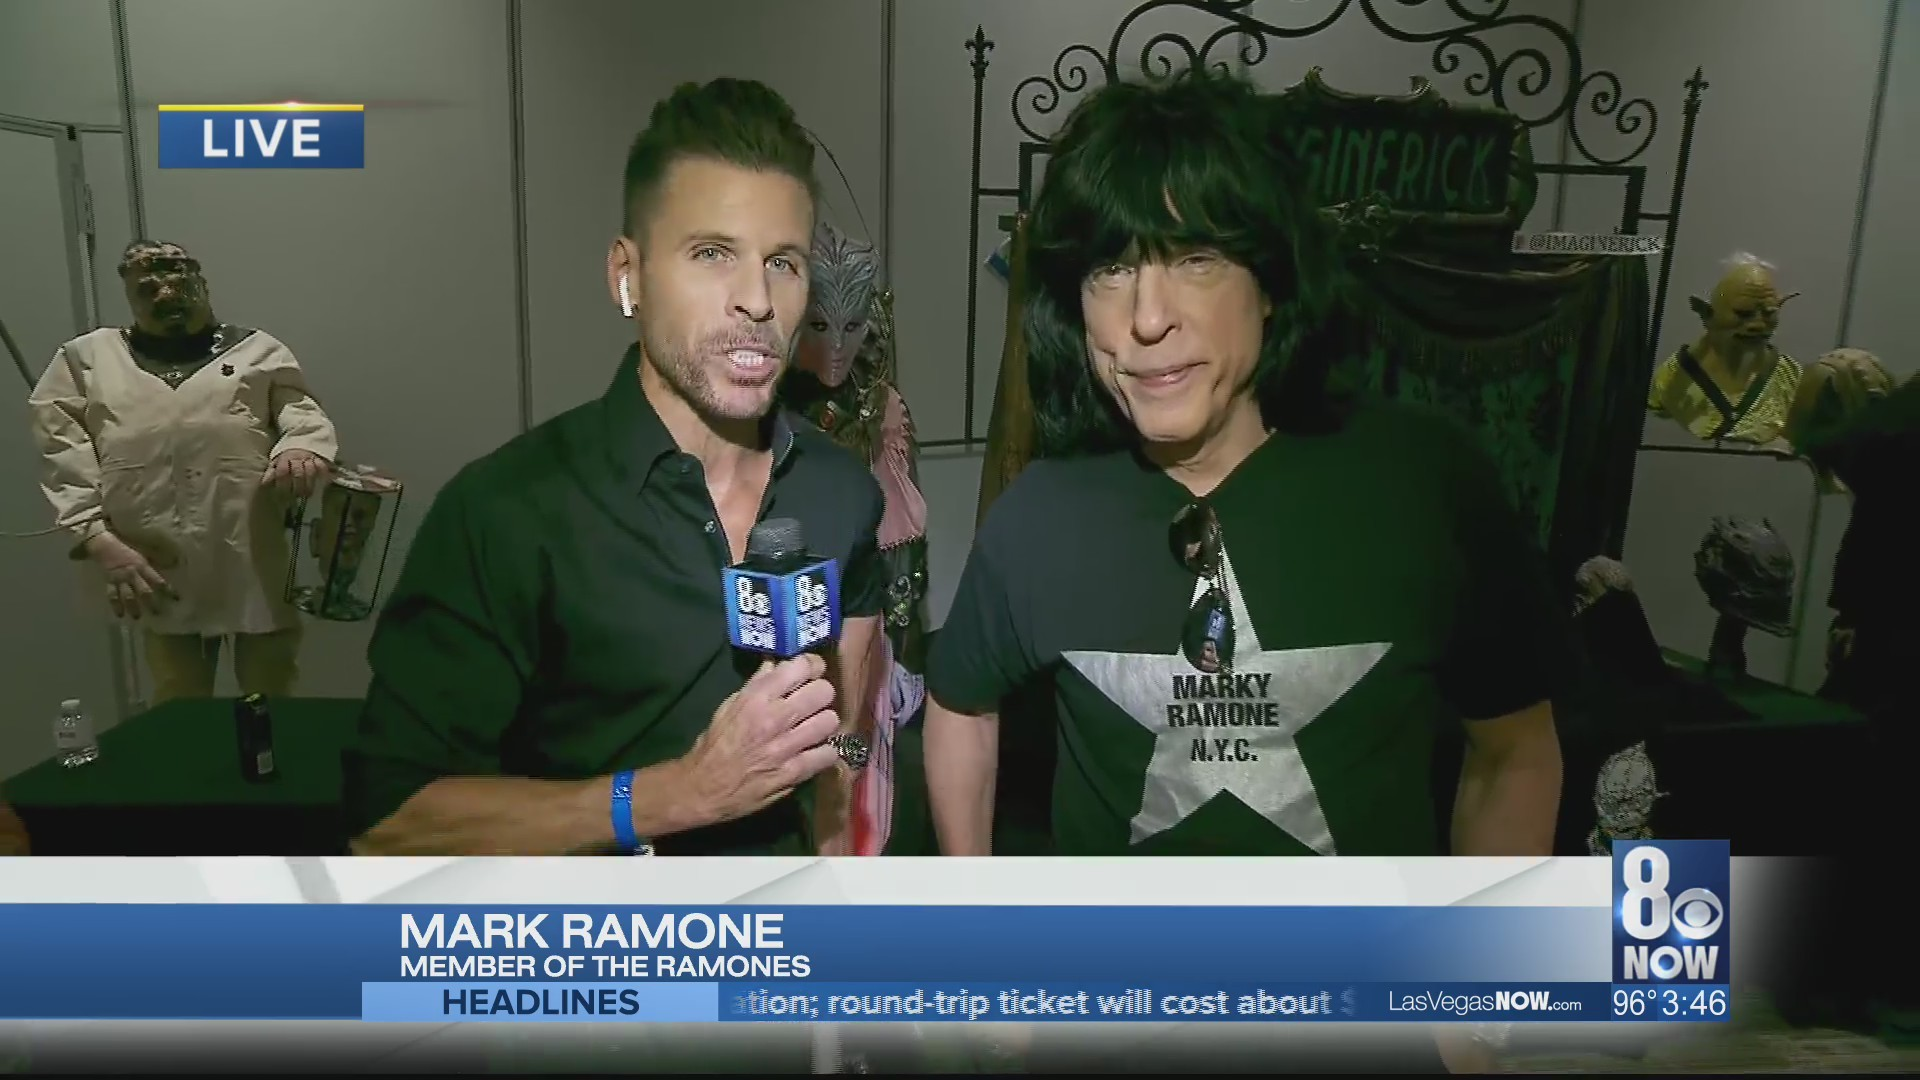 """JC chats about the """"Days of the Dead"""" expo with Marky Ramone"""